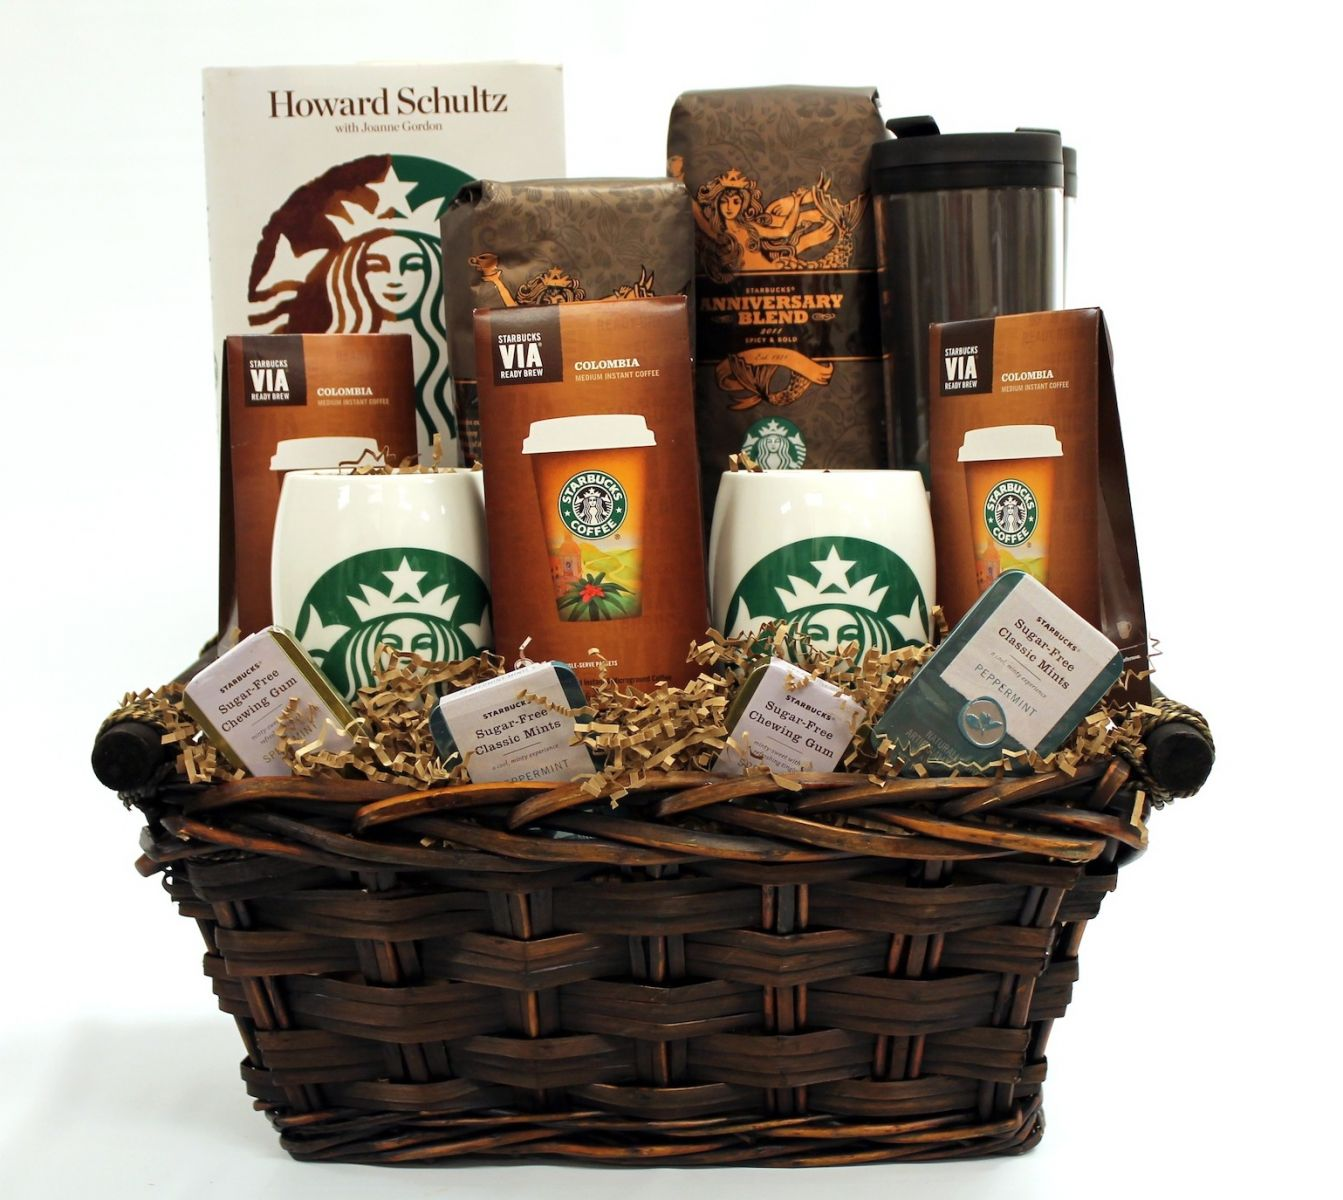 Fundraiser Gift Ideas: Support The HR Profession By Donating A Basket For The